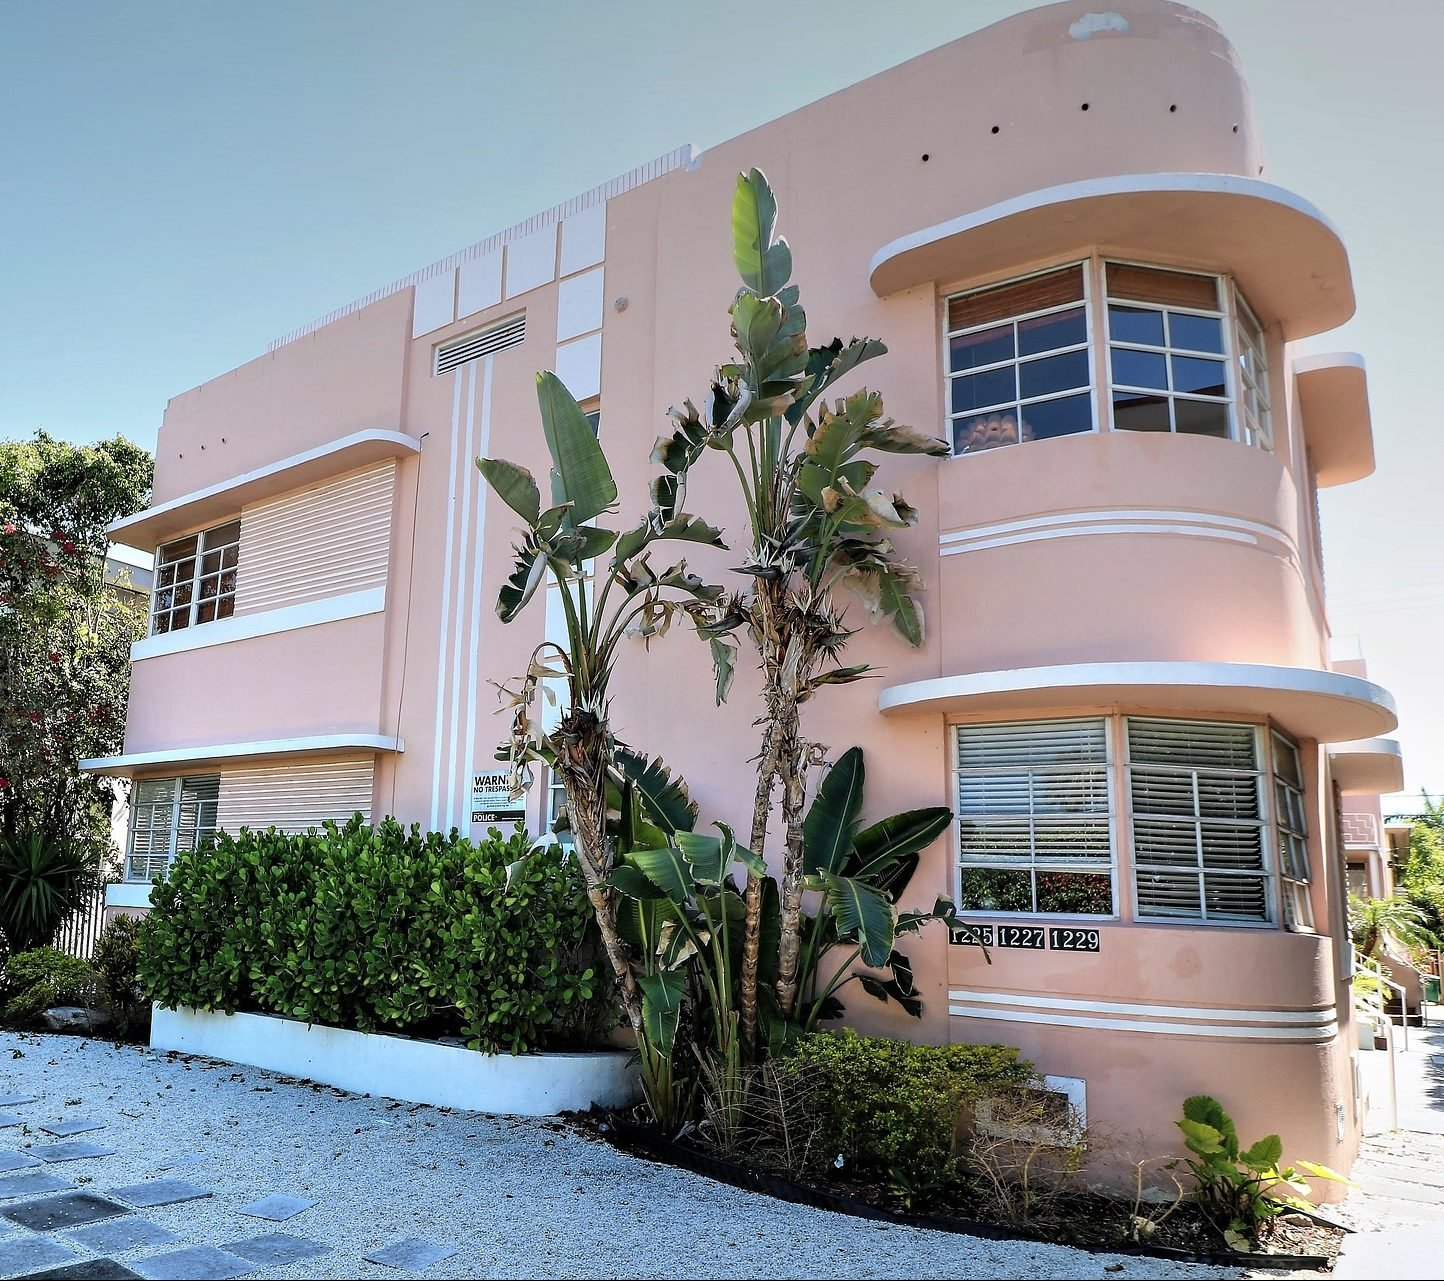 art deco 3703012 1920 e1616504784859 20 Things You Probably Didn't Know About Miami Vice